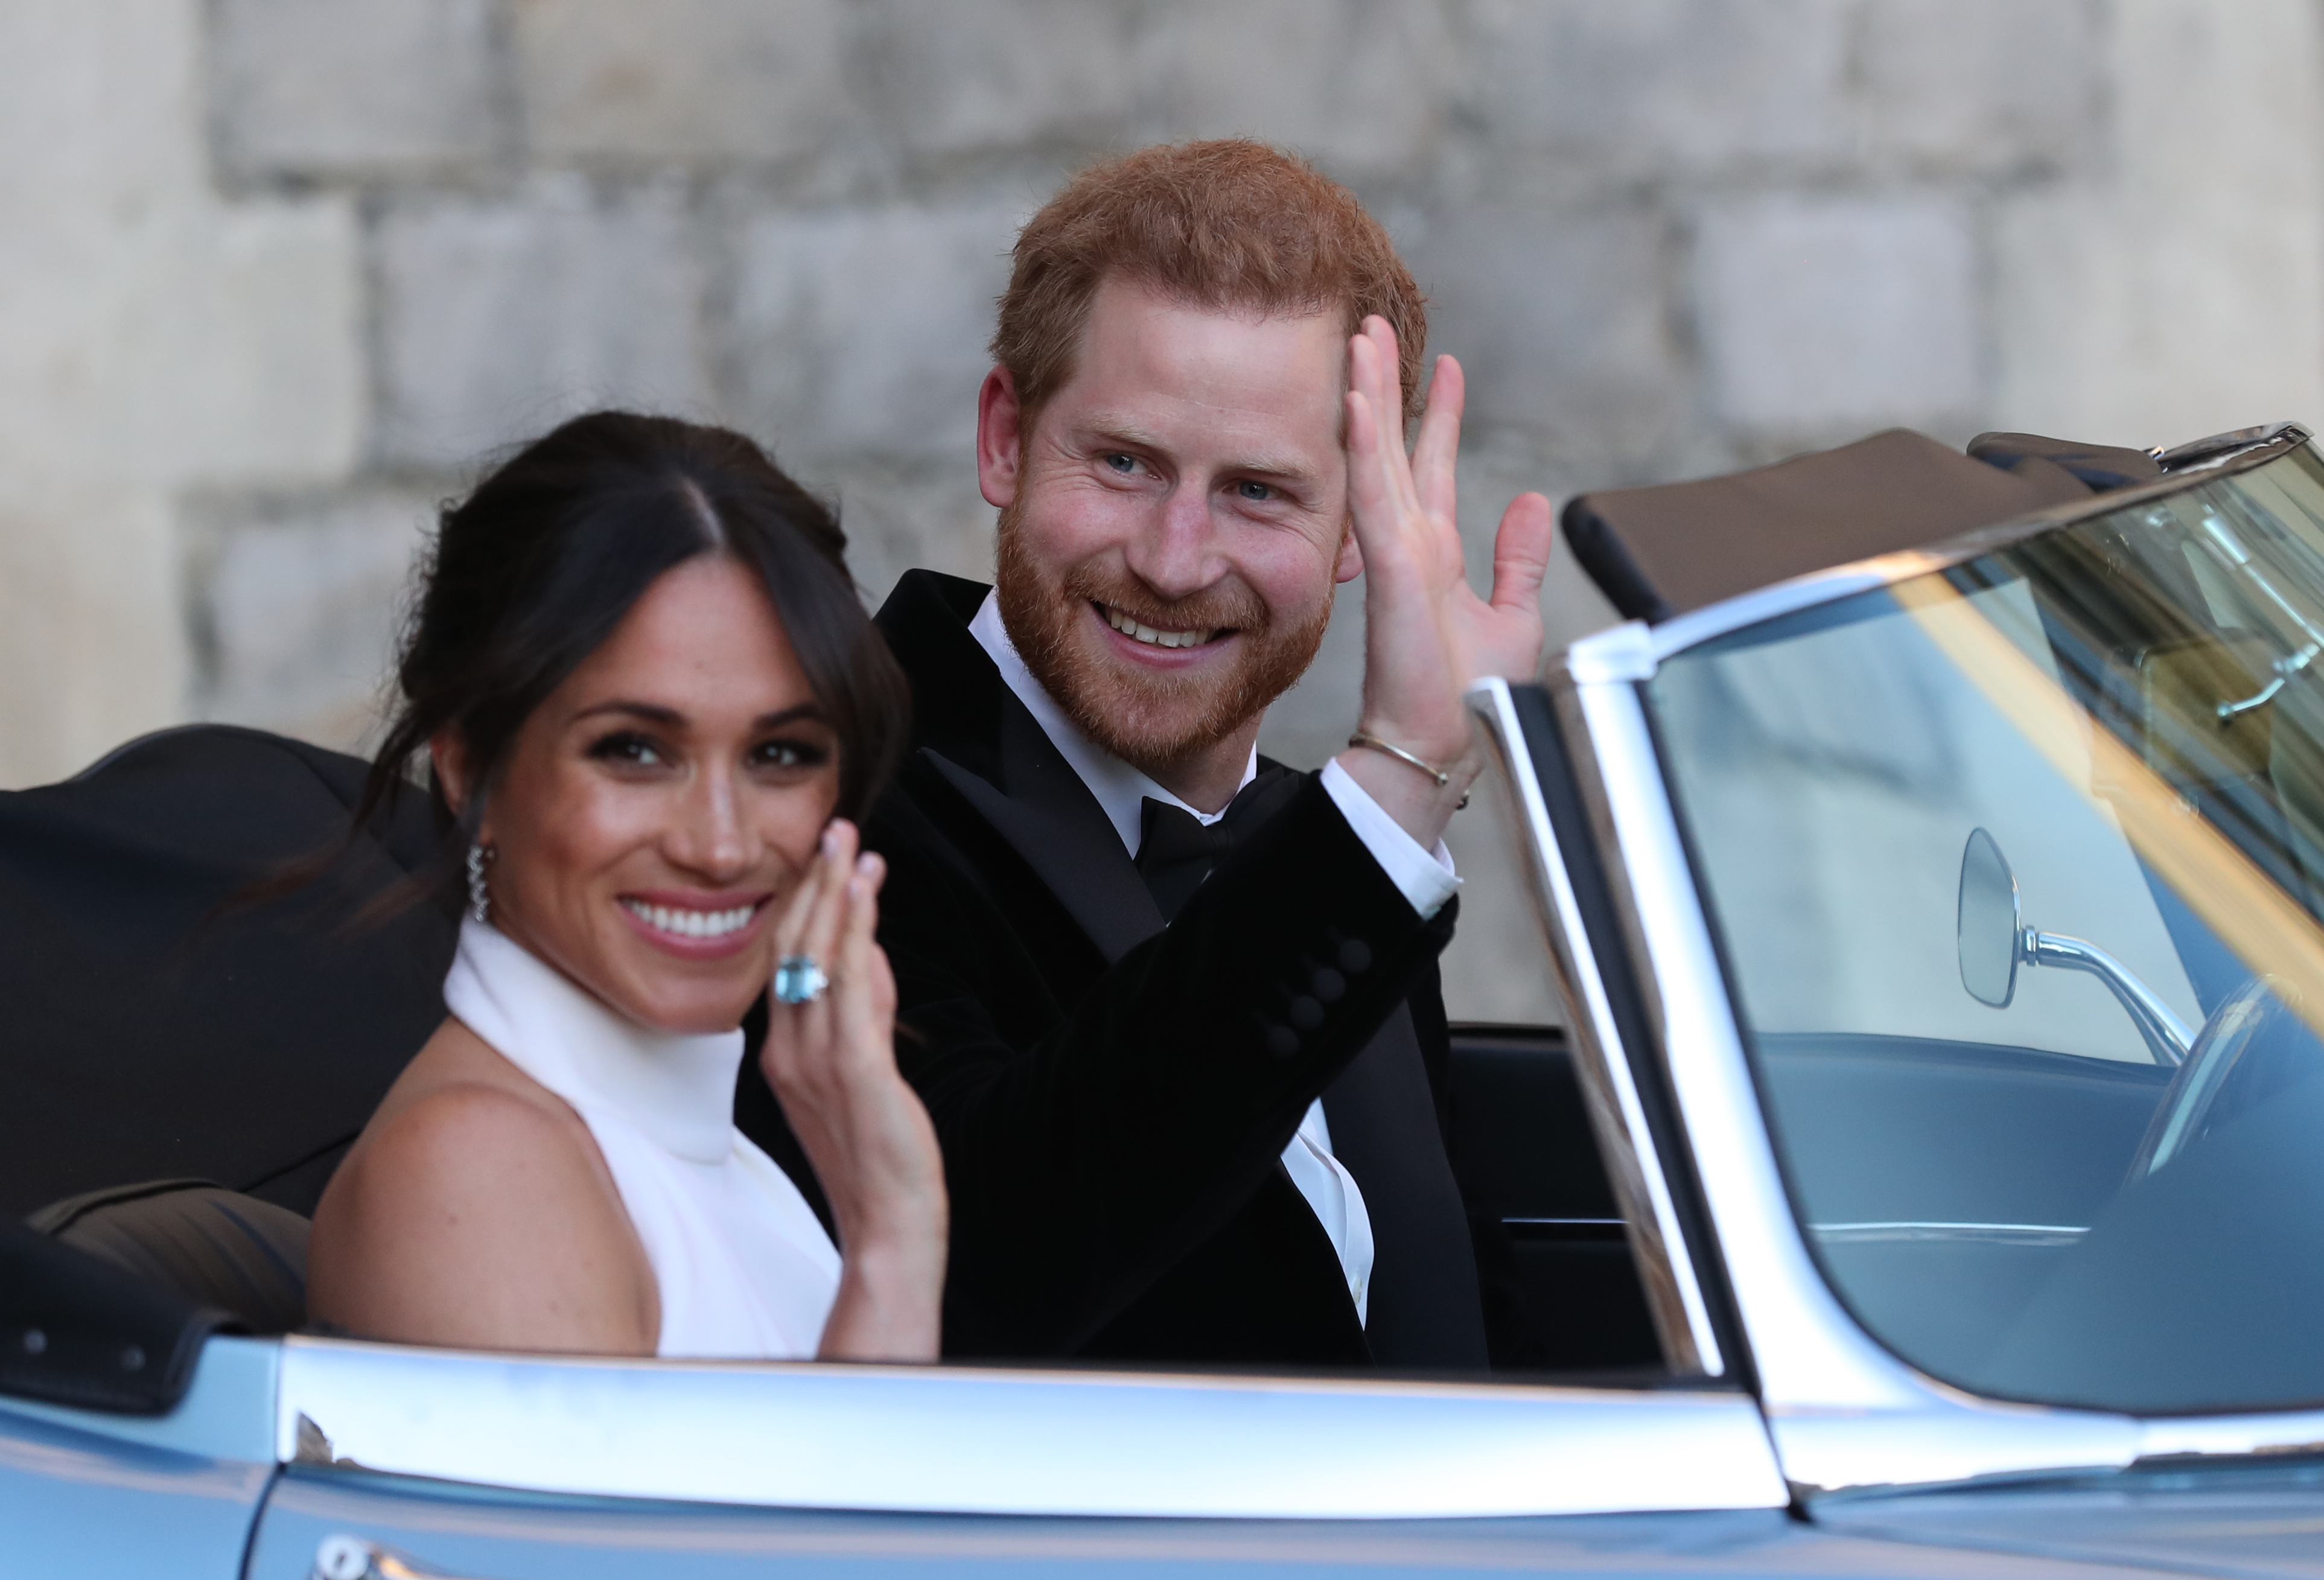 Prince Harry and Meghan Markle Announce They Will Be Stepping Back As Senior Members Of The Royal Family - Grazia